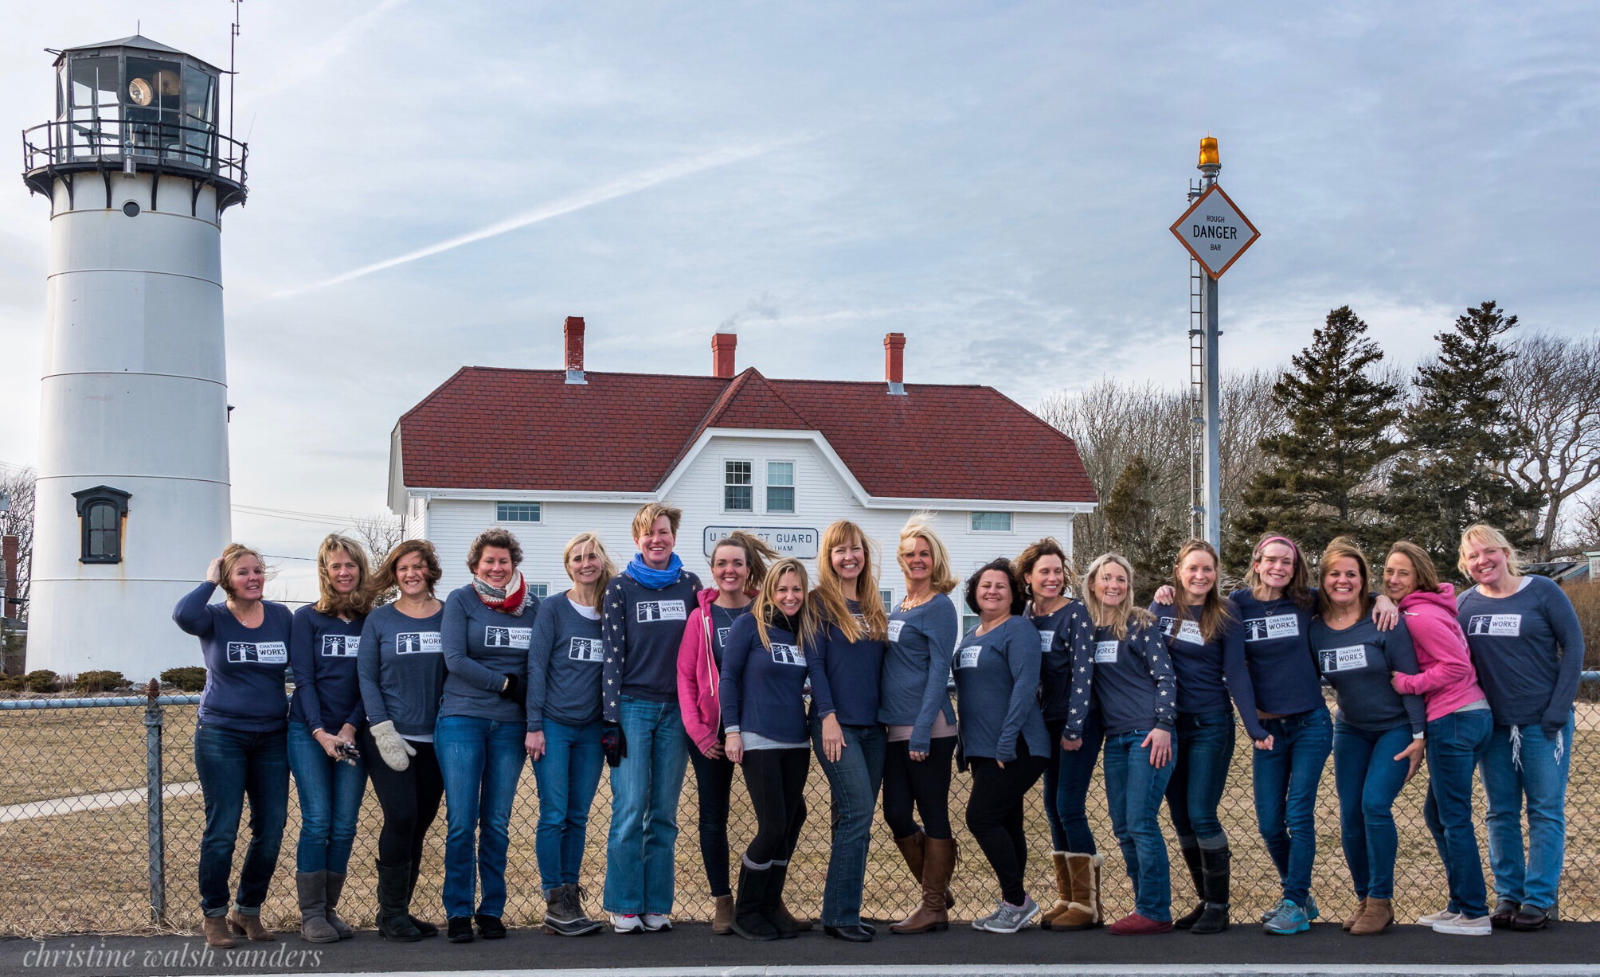 Some of our awesome Chatham Works influencers repping their CW gear at Chatham Light. Photo credit: Christine Walsh Sanders